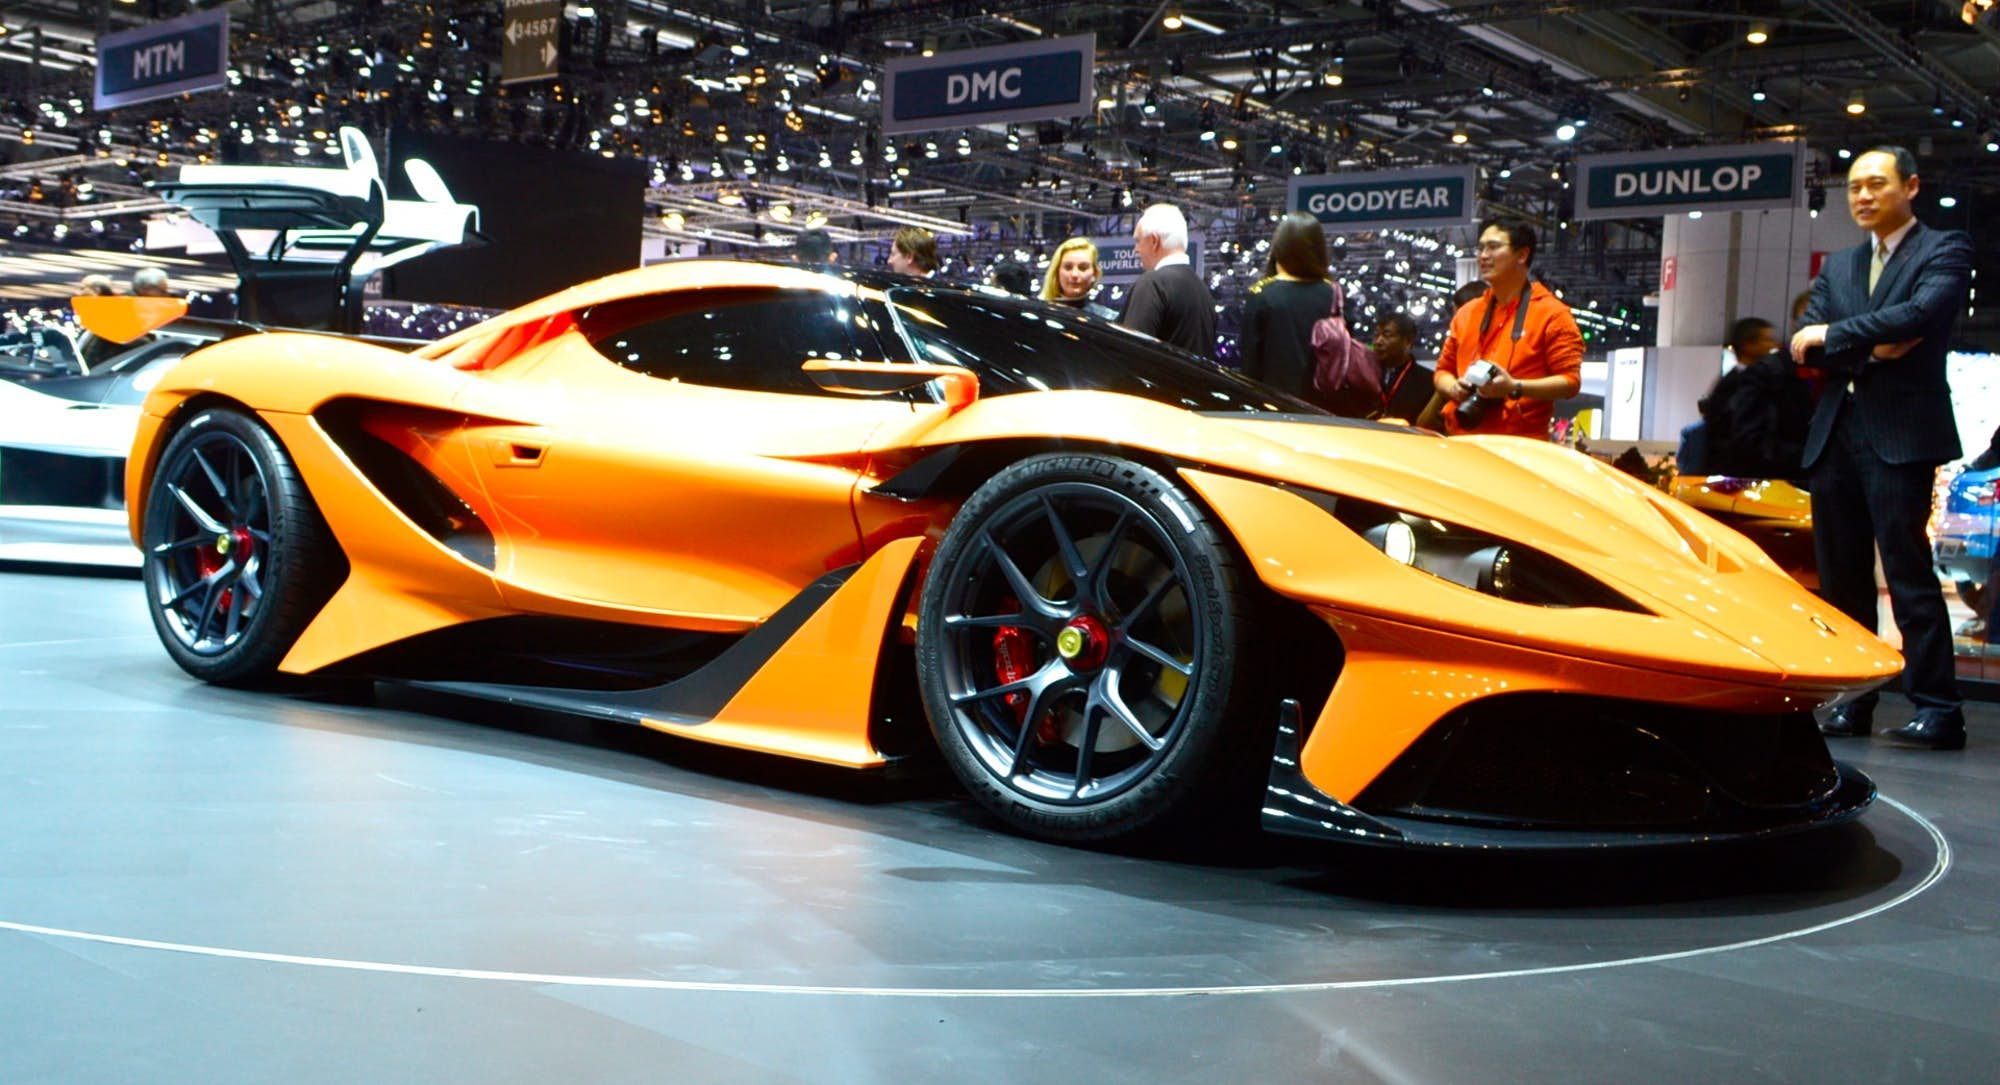 In Pictures Supercars Exotics And Other Sporty Machinery Of The 2016 Geneva Motor Show Cool Sports Cars Sports Cars Super Cars